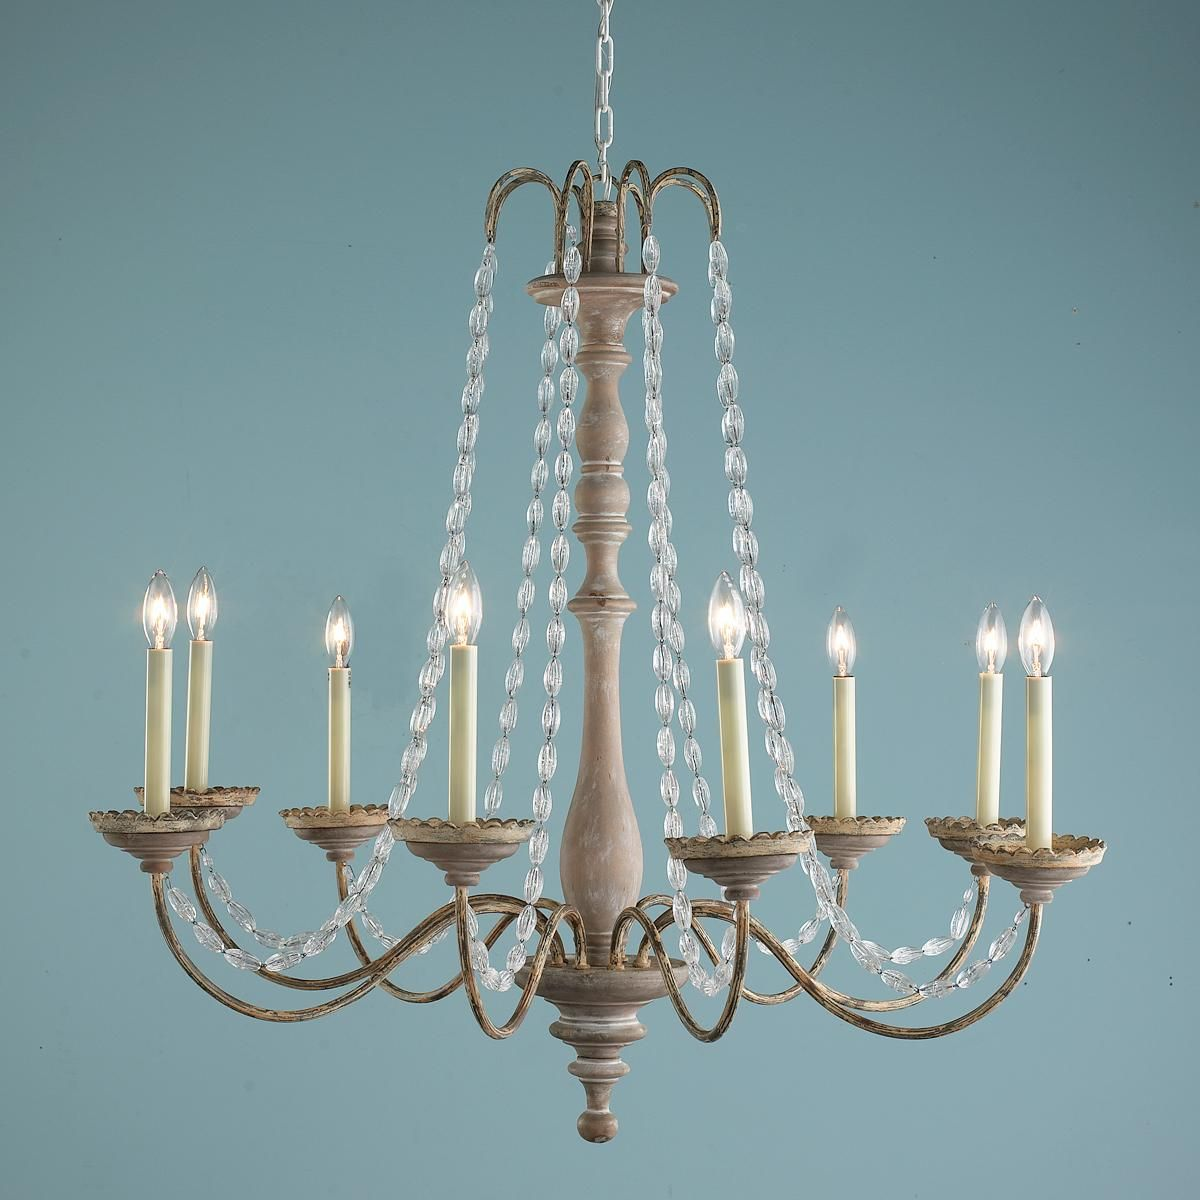 Crystal Swag And Wooden Spindle Chandelier 8 Light 749 Shades Of 34 H X 36 5 W Living Room